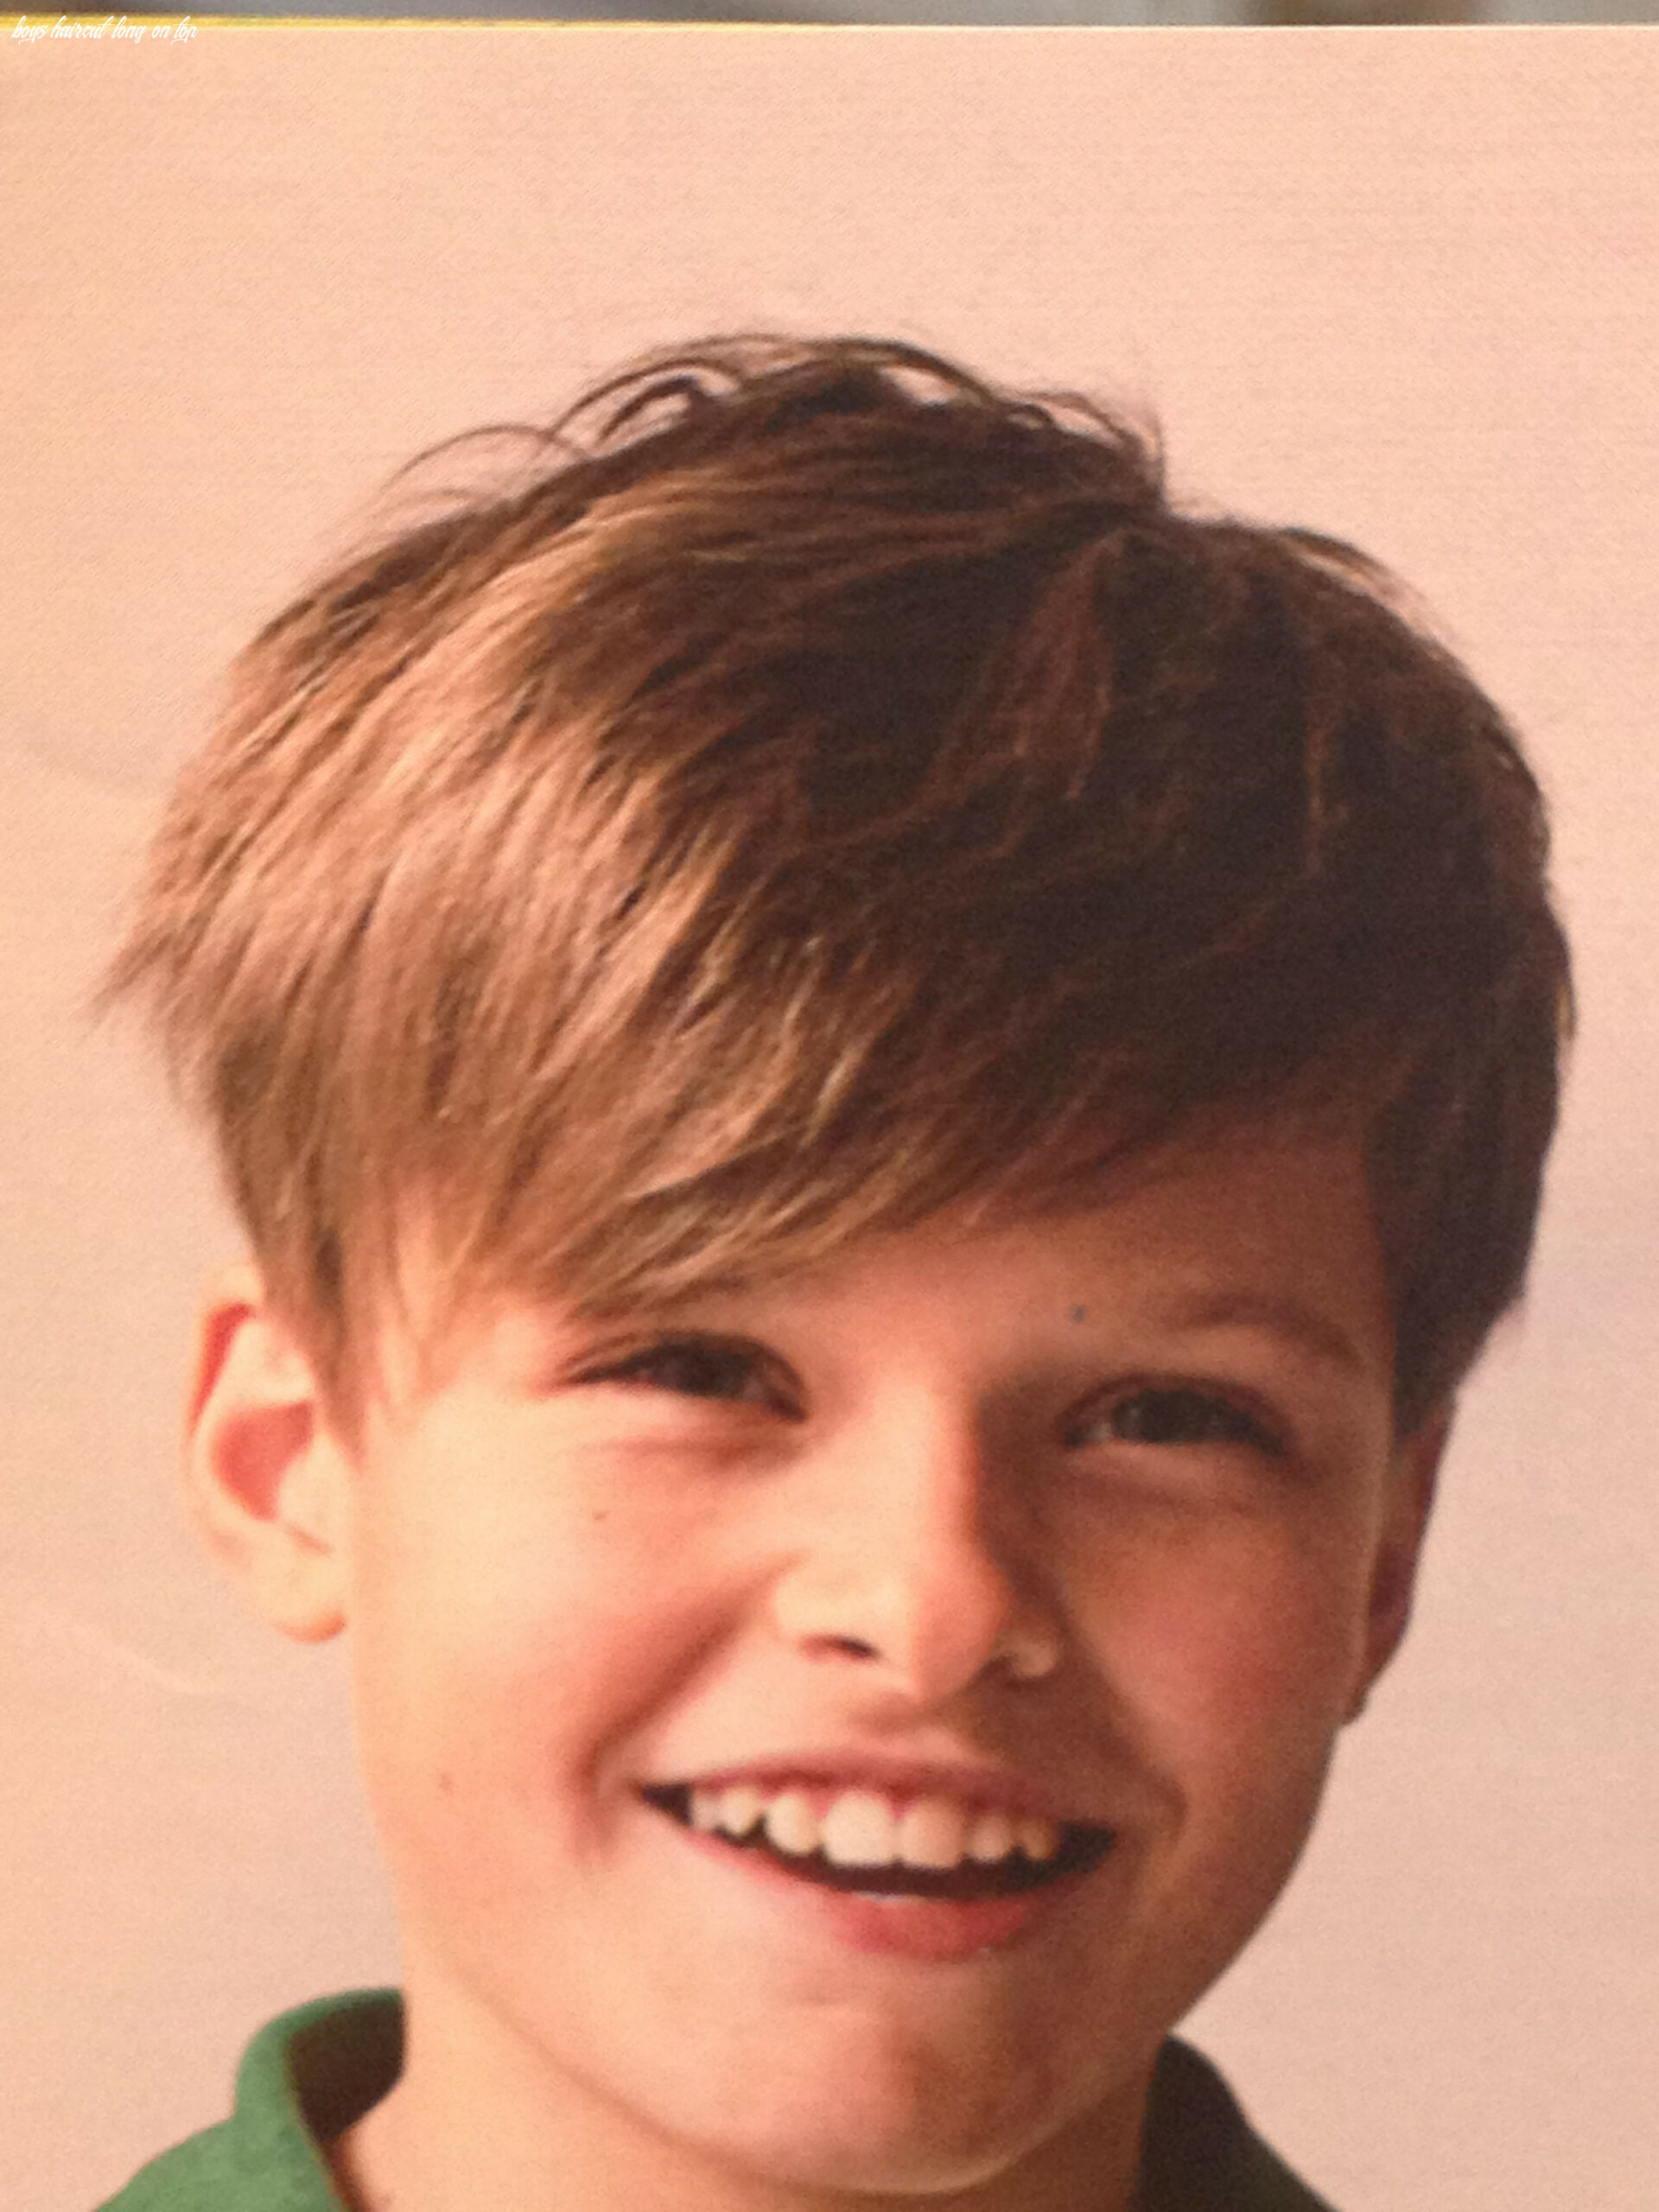 Pin on ideas for kids boys haircut long on top